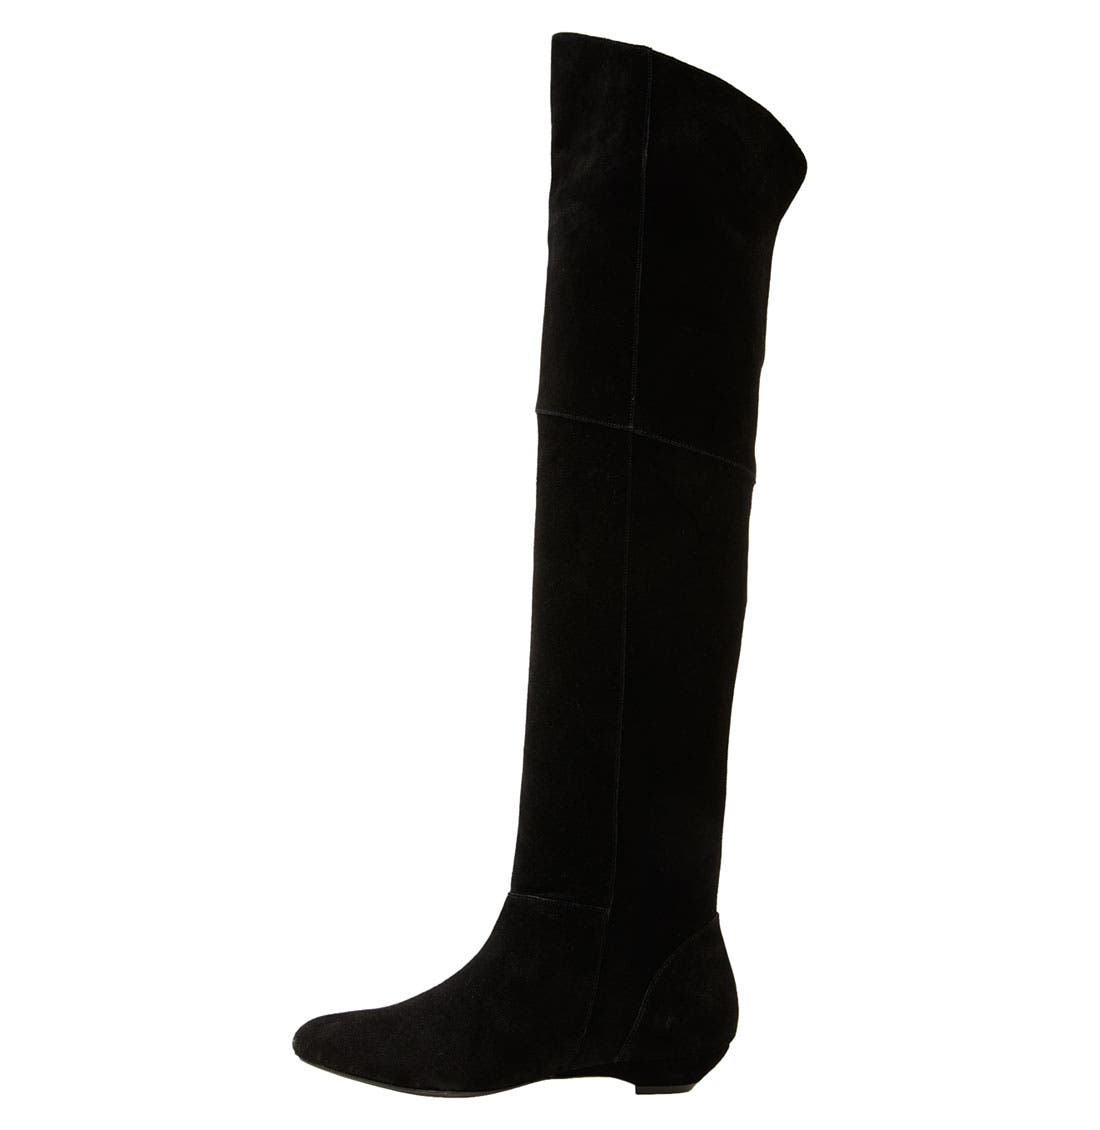 'Overrpas' Over the Knee Boot,                             Alternate thumbnail 2, color,                             006